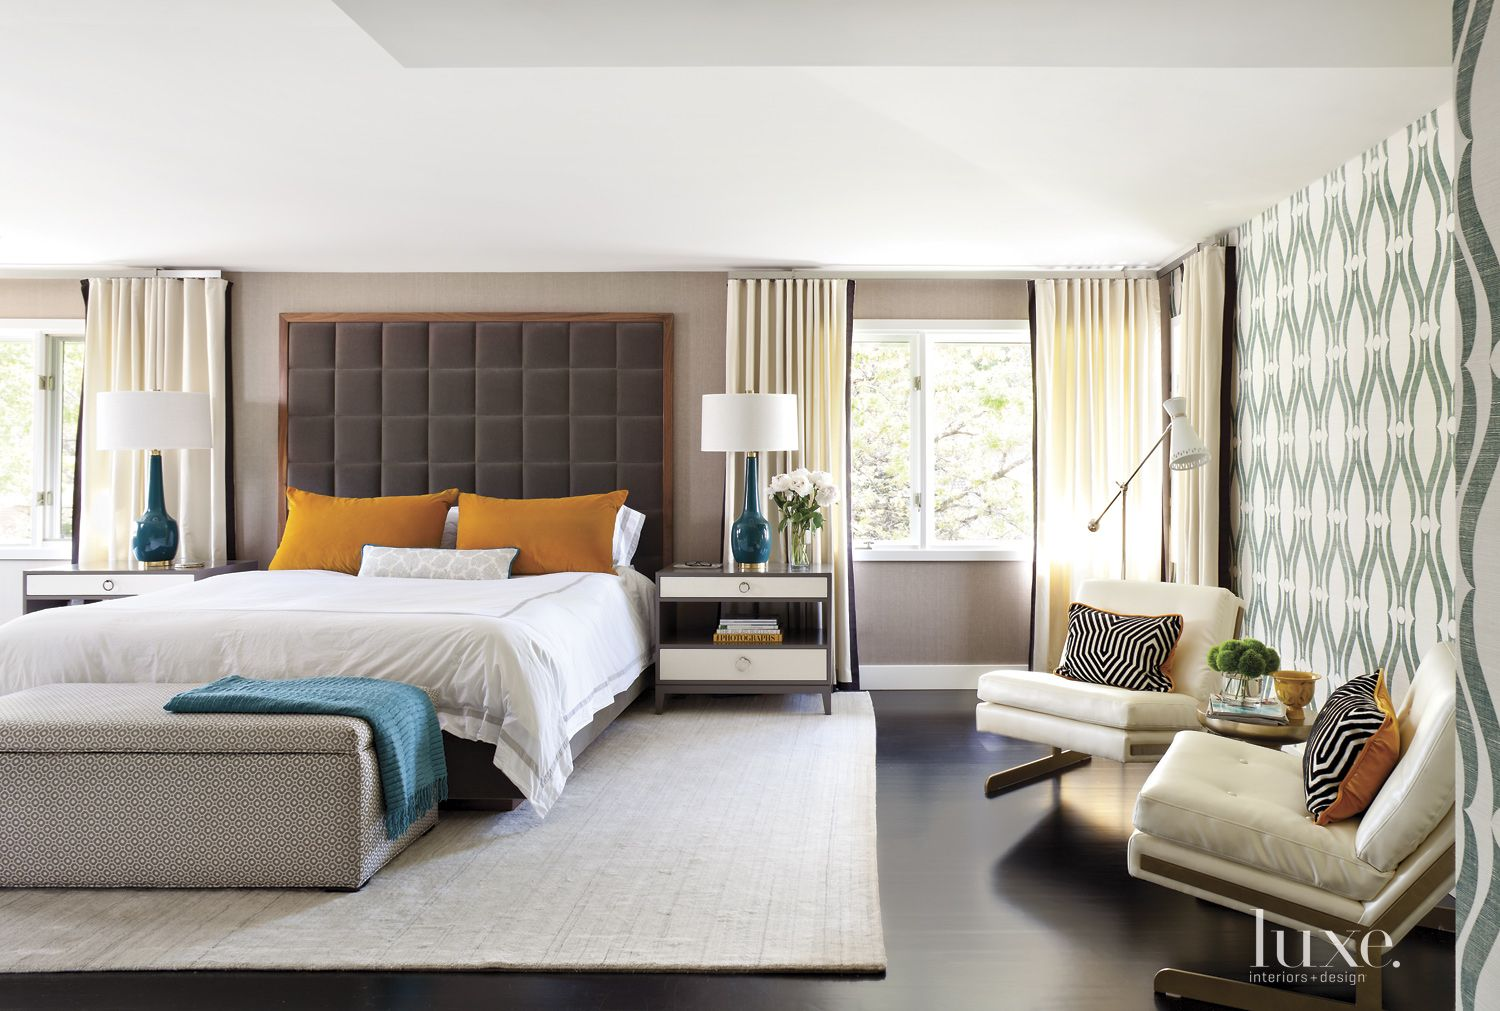 Modern Neutral Bedroom with Patterned Ottoman